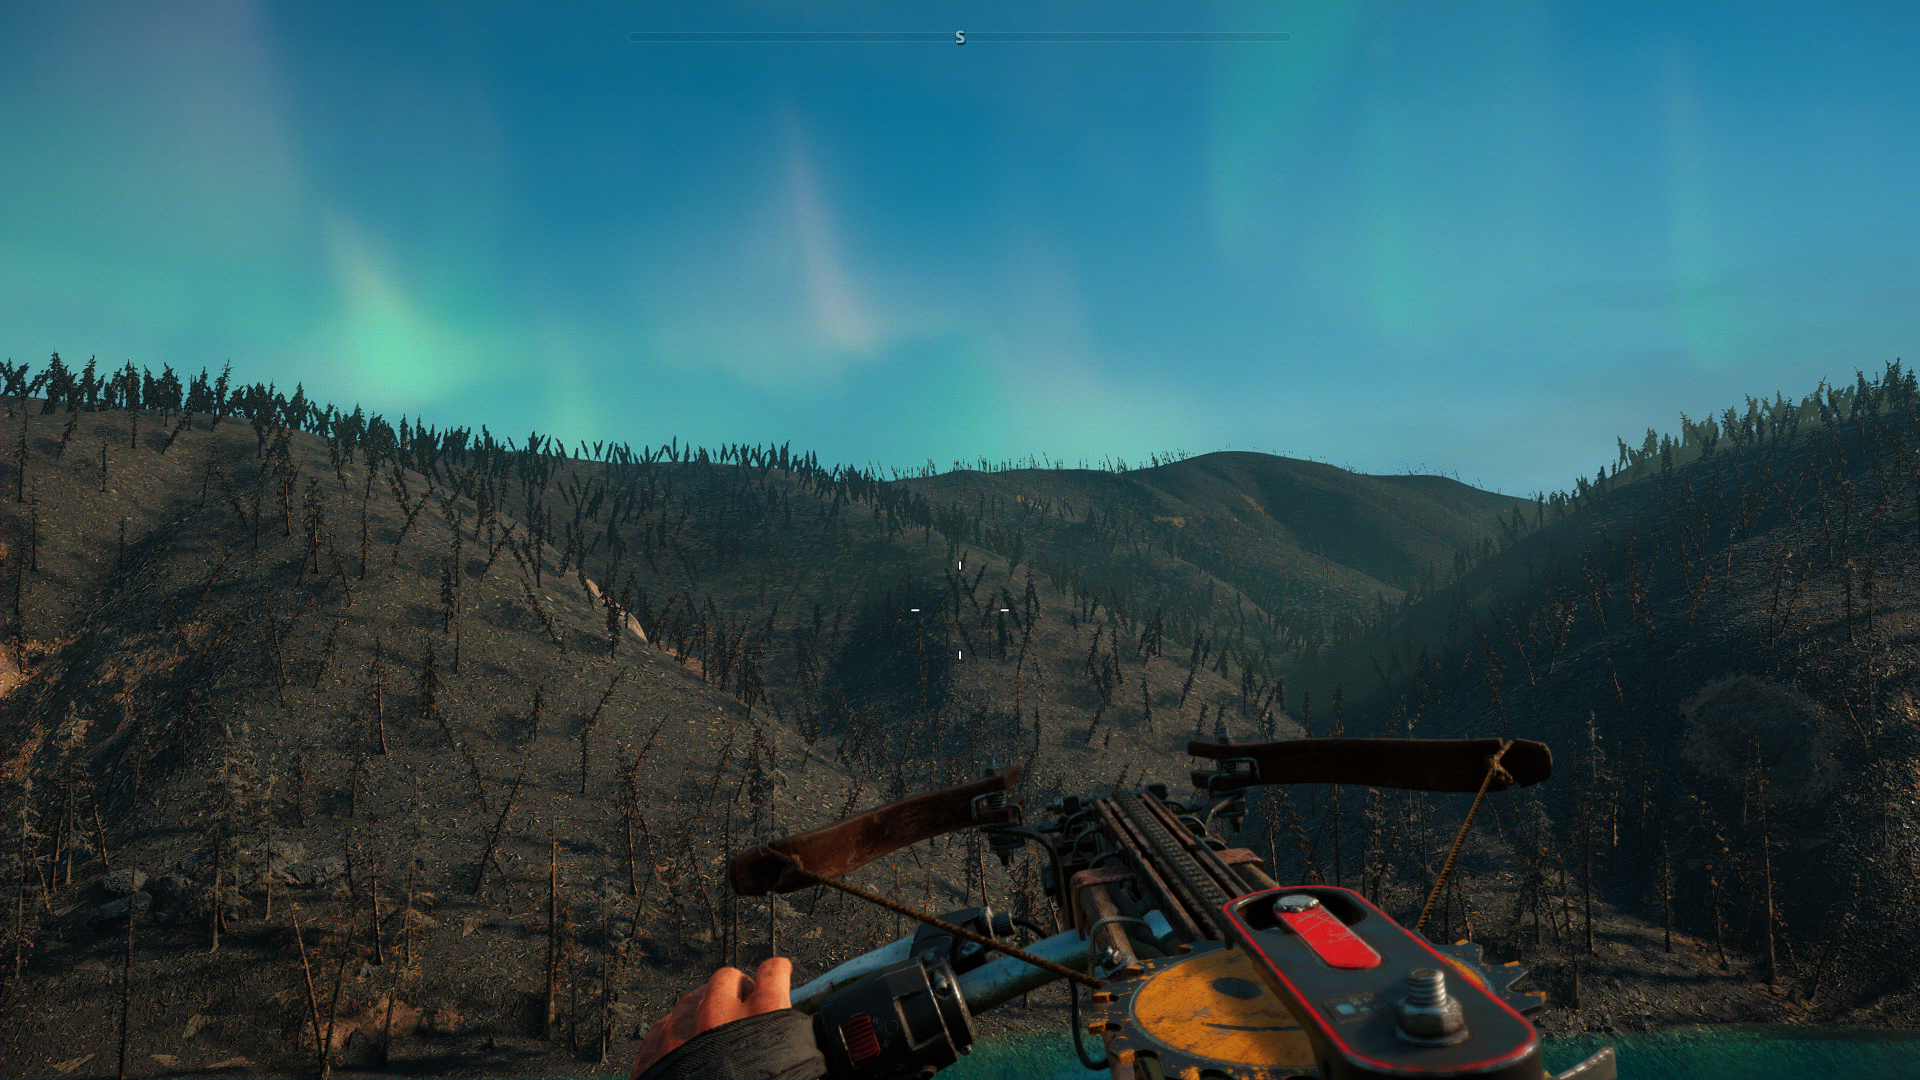 Zsa Zsa Gabor dating historie